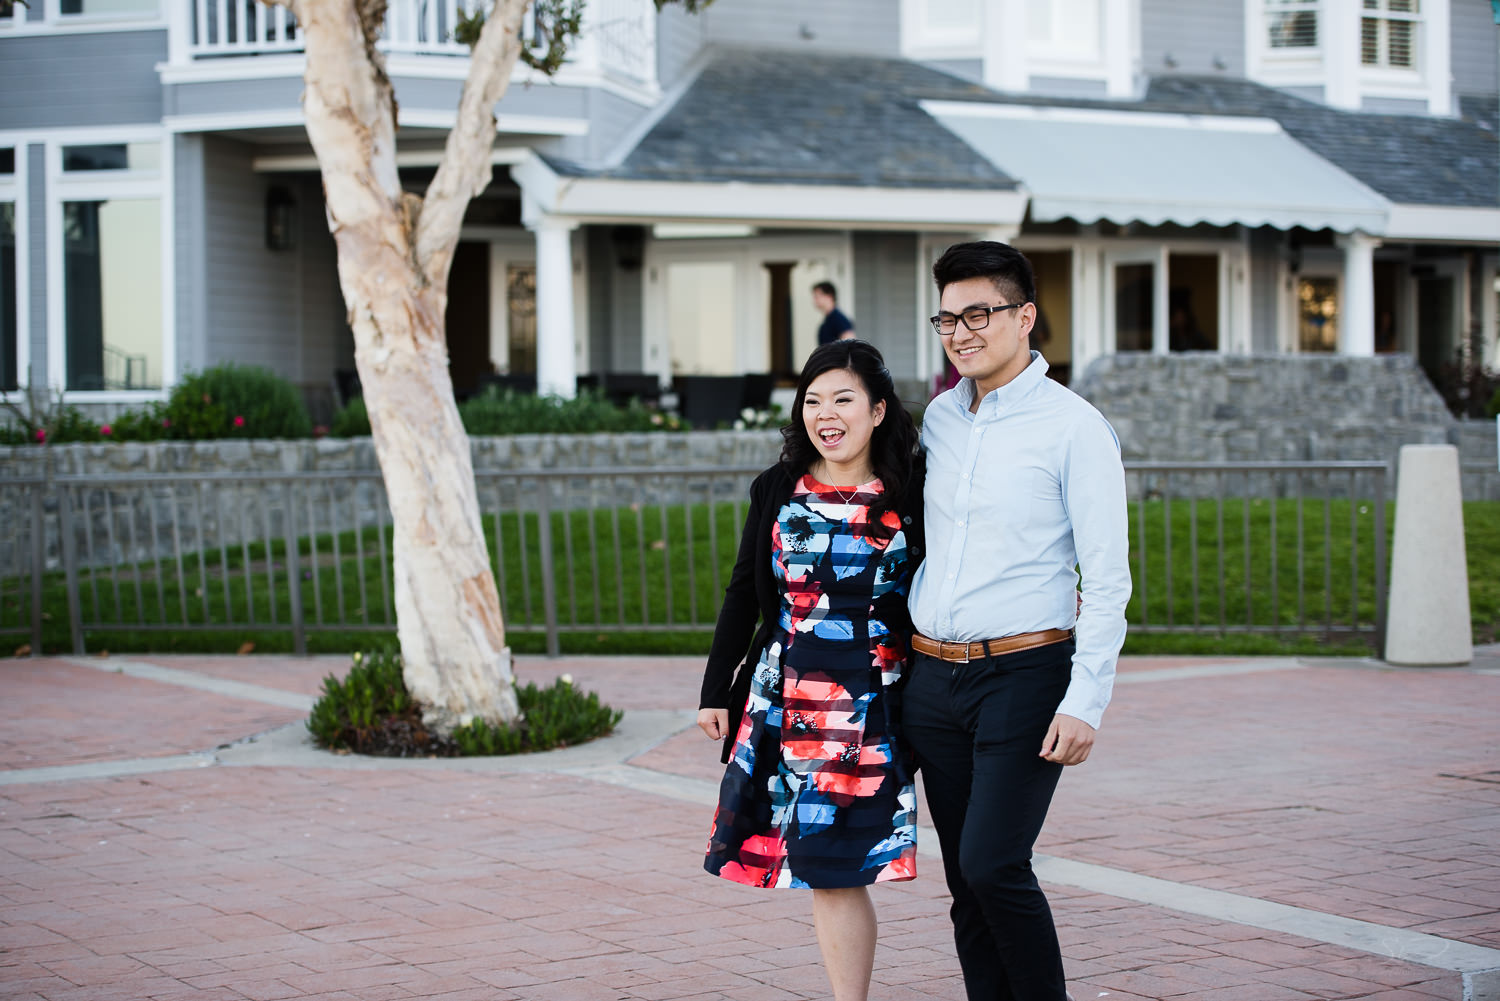 Here comes the surprise. Cliffside proposal & engagement in Dana Point | Stanley Wu Photography Portrait & Wedding Photographer | Los Angeles, Orange County, Southern California